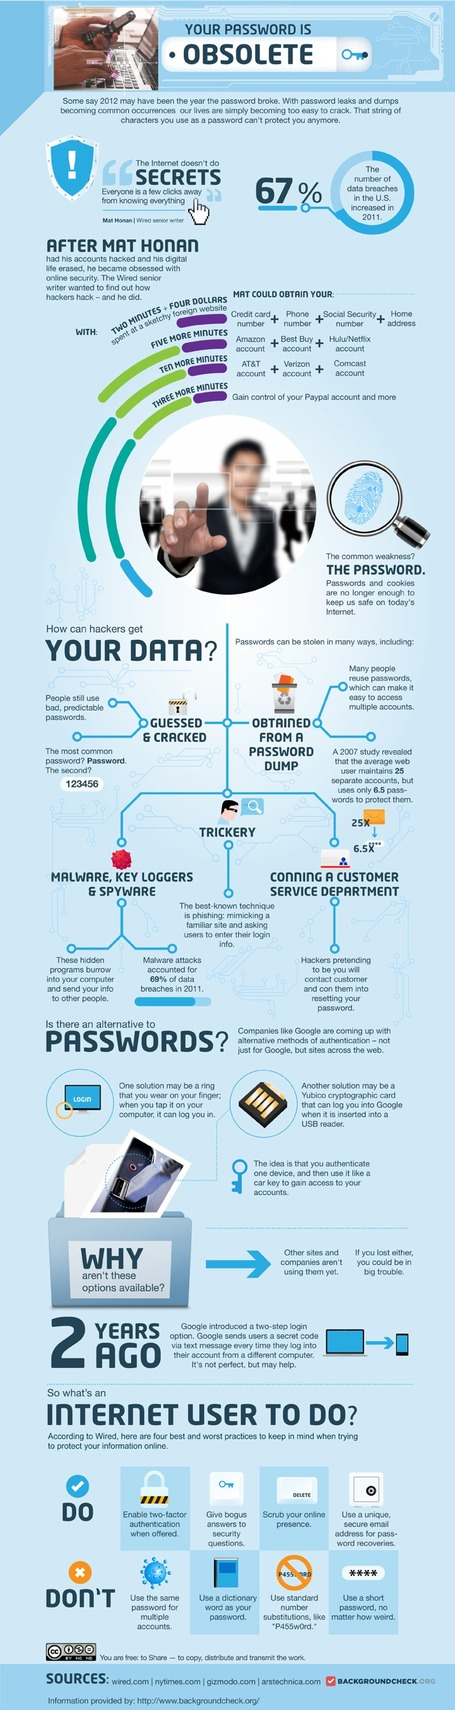 Passwords, Security and the Future of Authentication [#Infographic] | Social media and education | Scoop.it